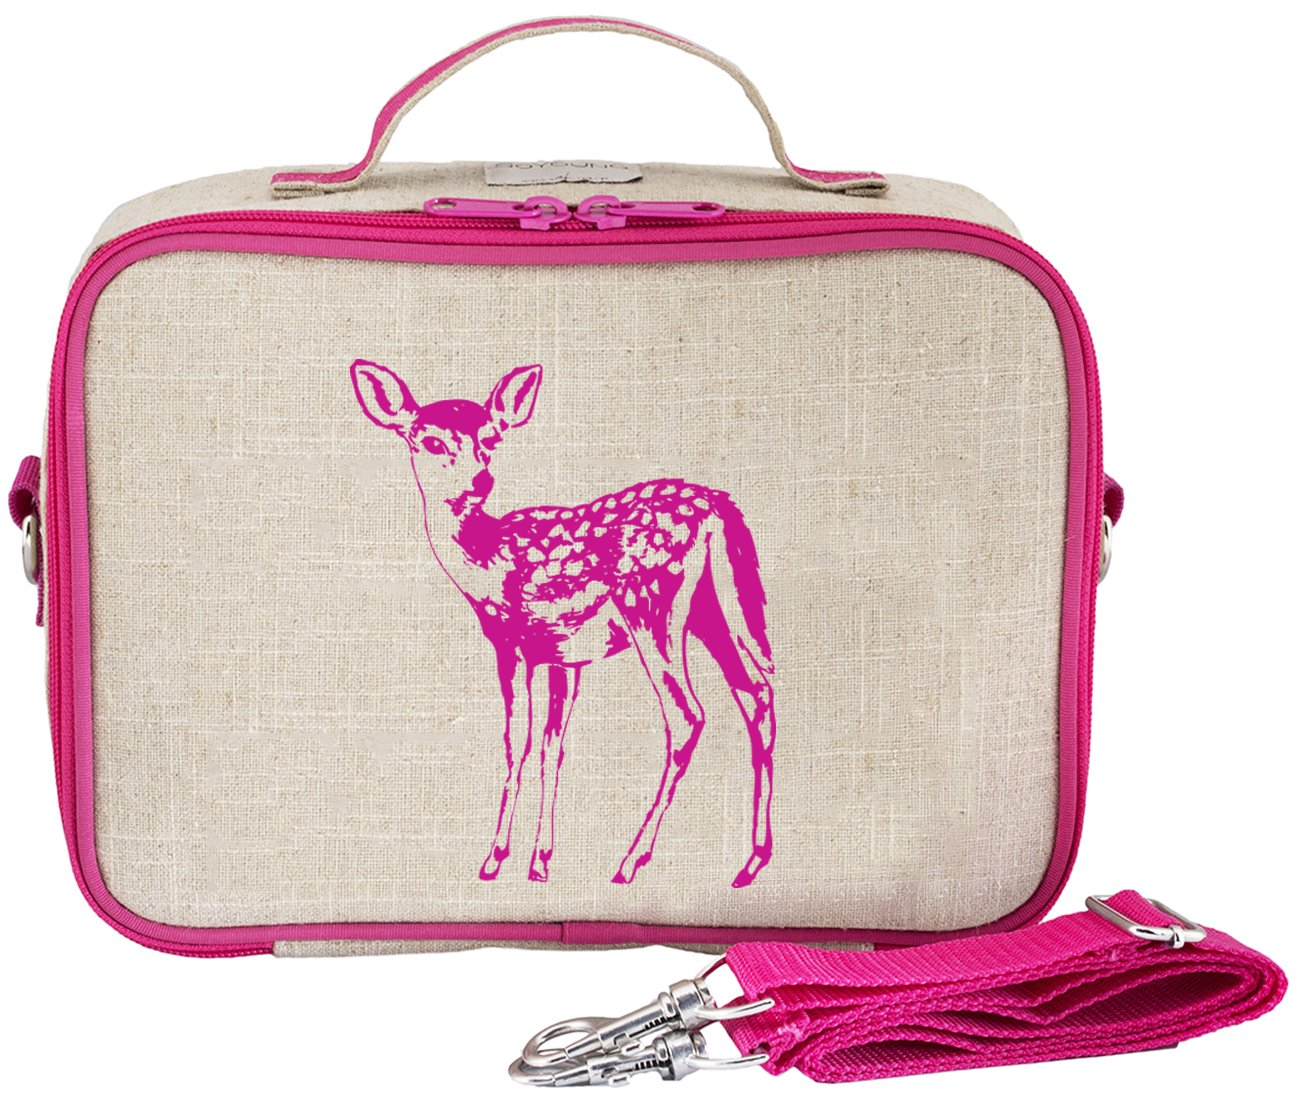 SoYoung Pink Fawn Lunch Box, Raw Linen